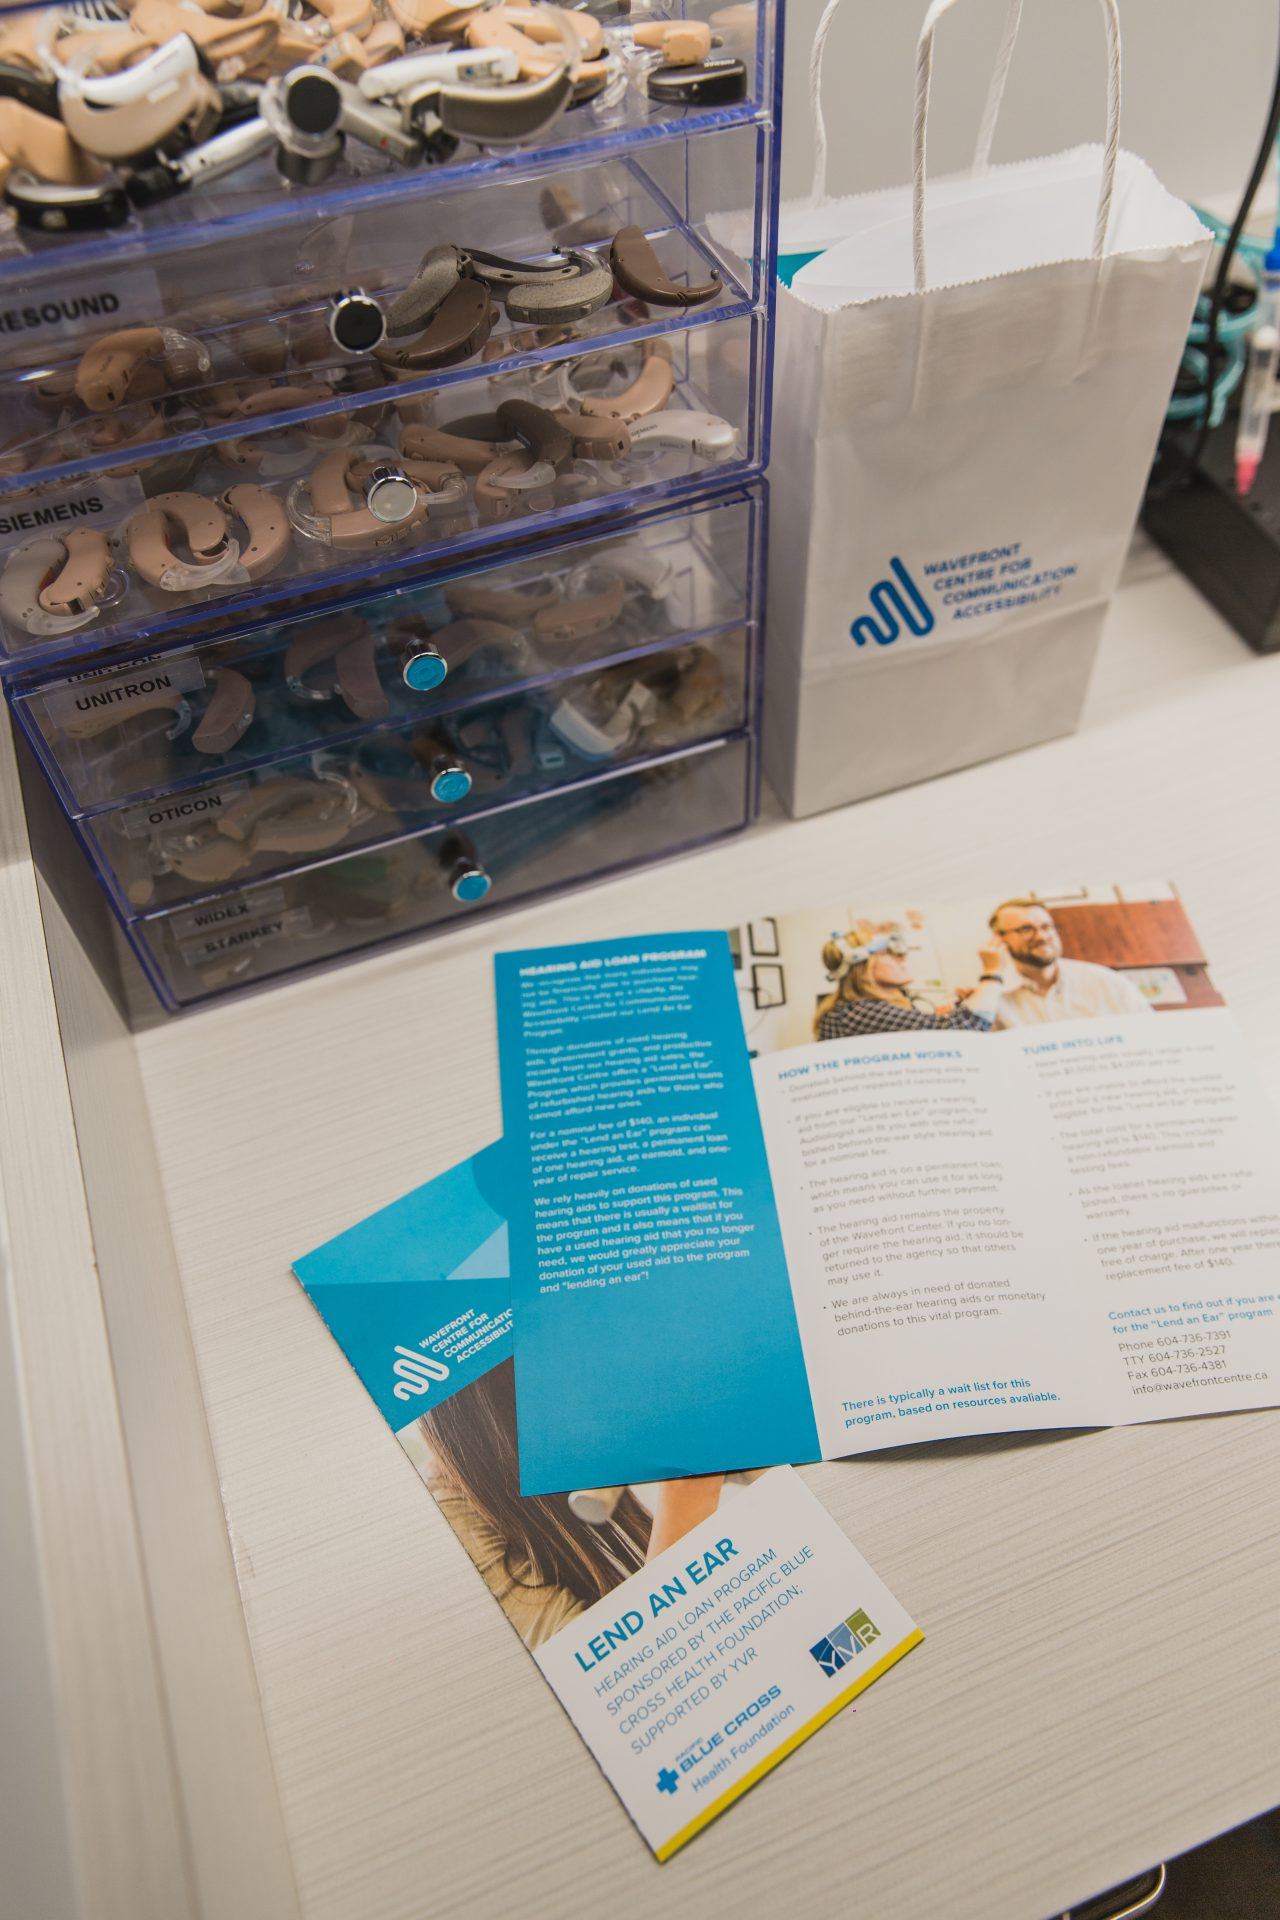 Display with six drawers all filled with hearing aids. On the counter is two Lend an Ear pamphlets